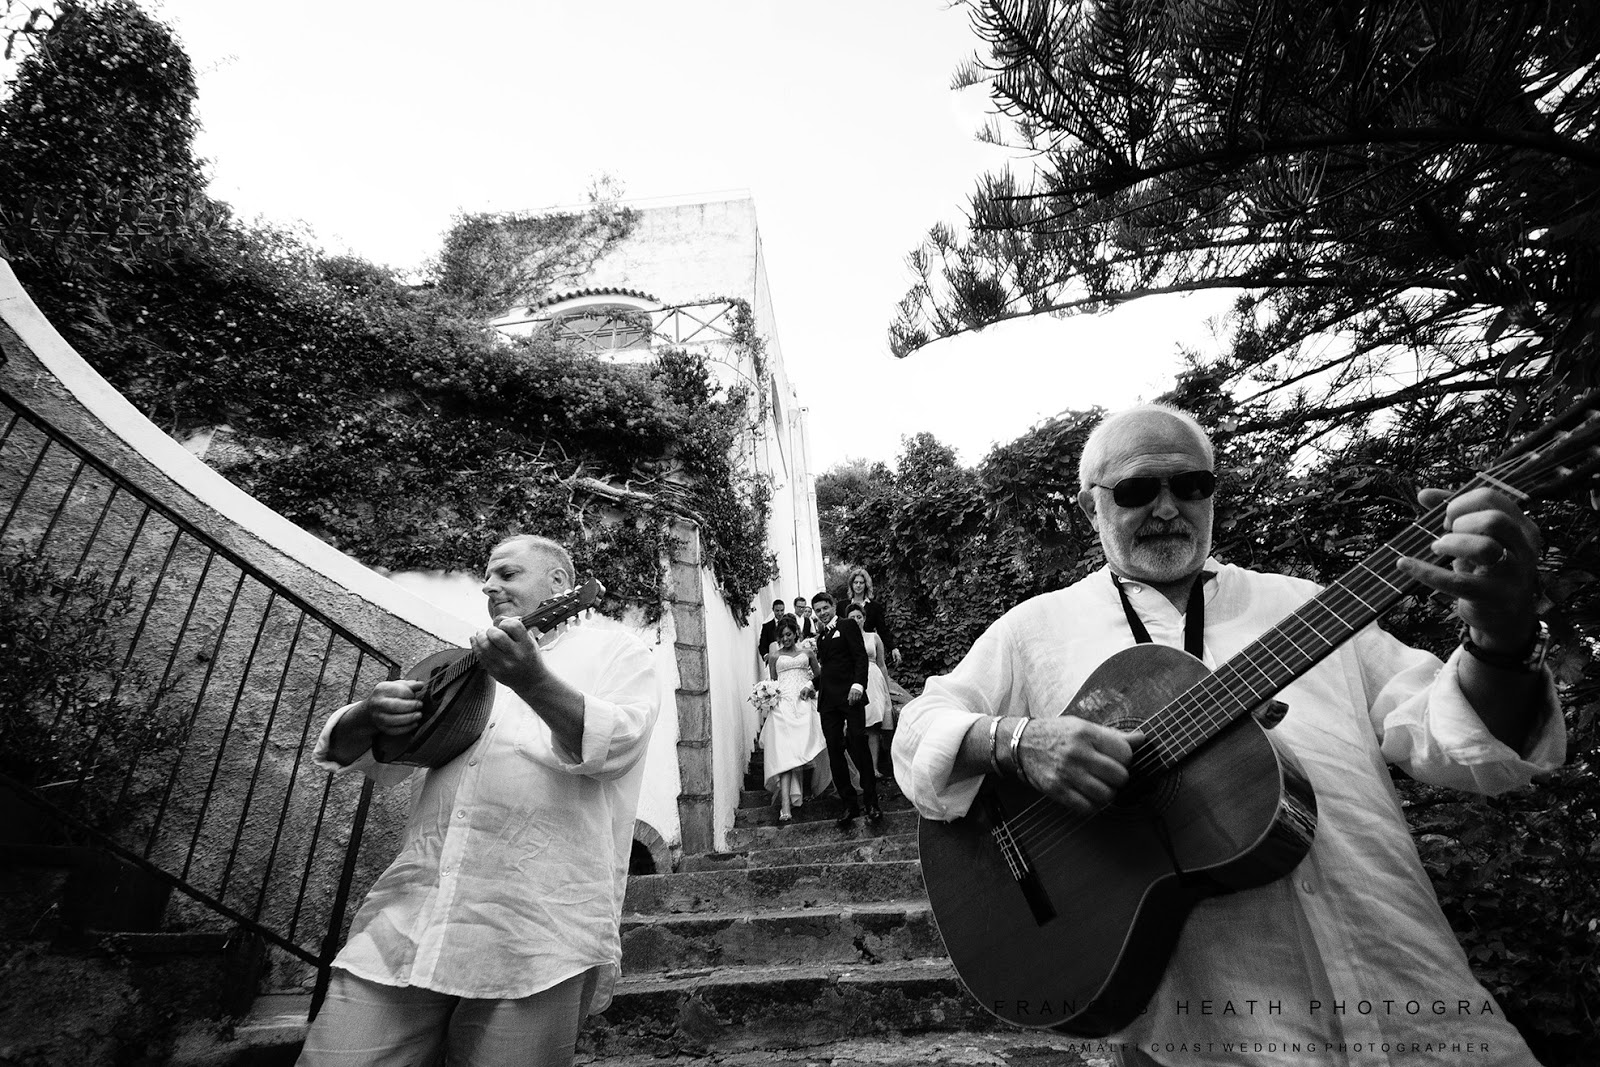 Neoplitan band playing music during a Positano wedding